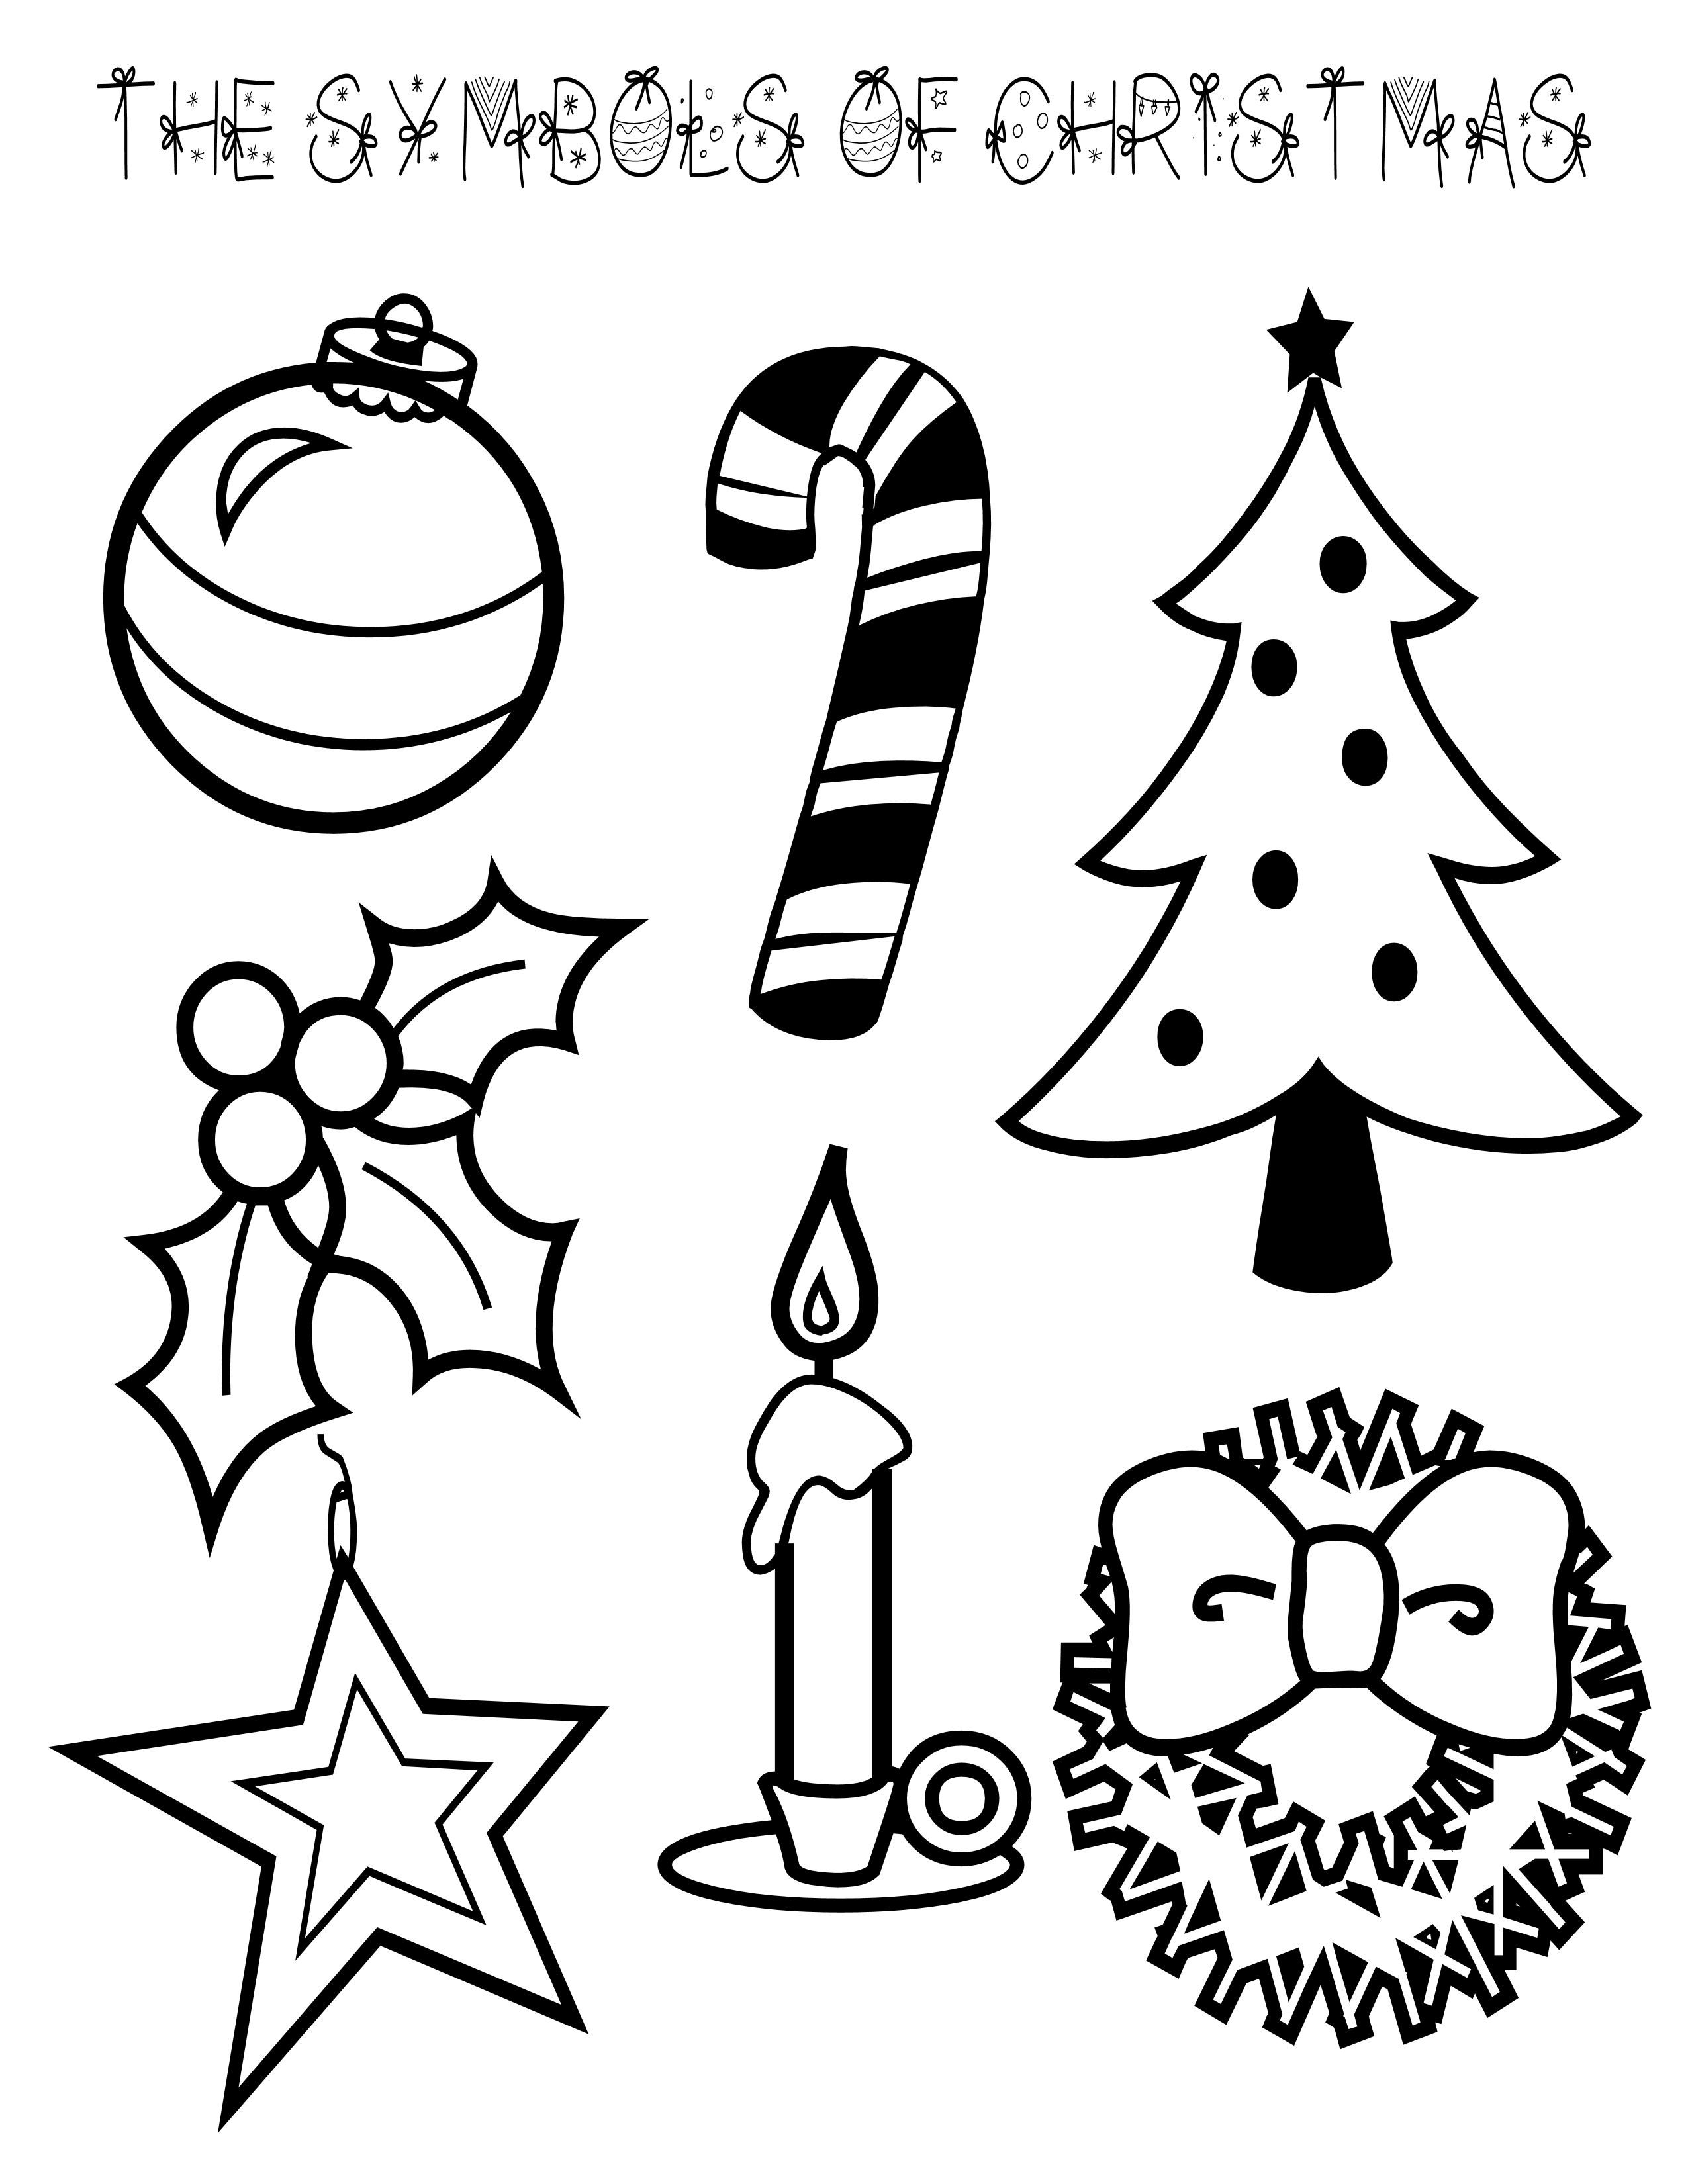 Symbols of Christmas Coloring Page.